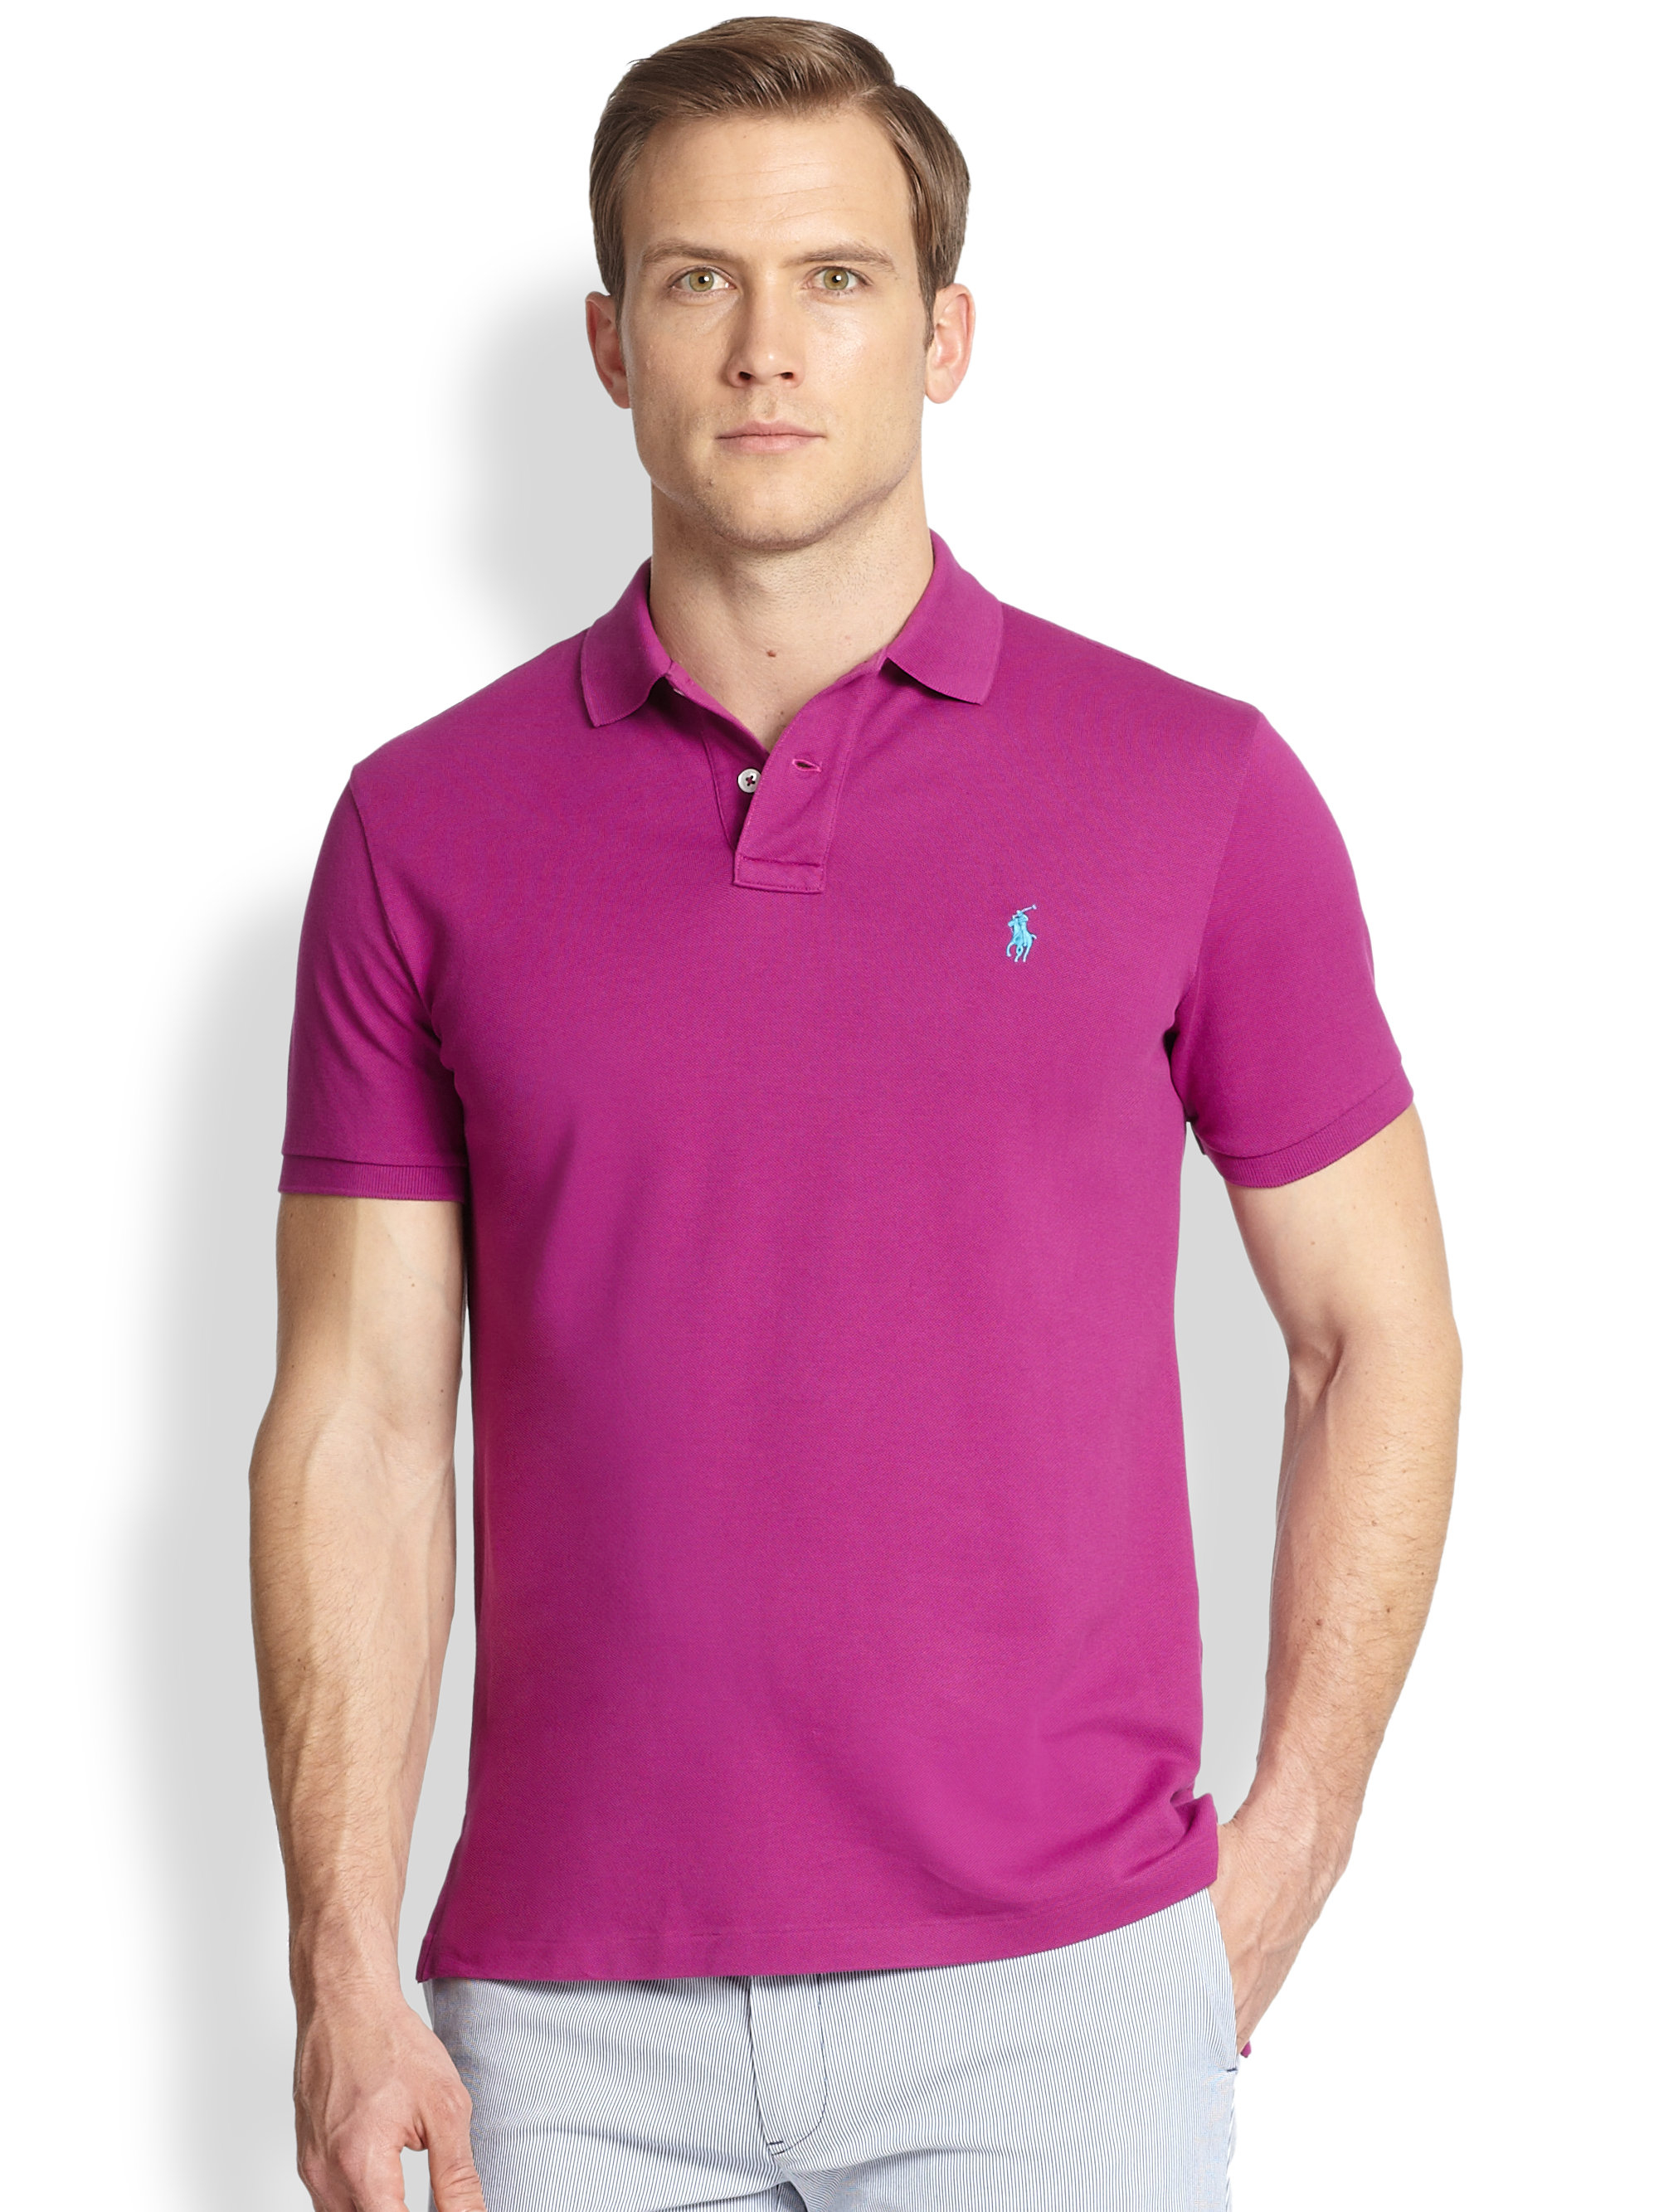 Lyst - Polo Ralph Lauren Custom-Fit Stretch-Mesh Polo in Purple for Men facc6dfe6a9f